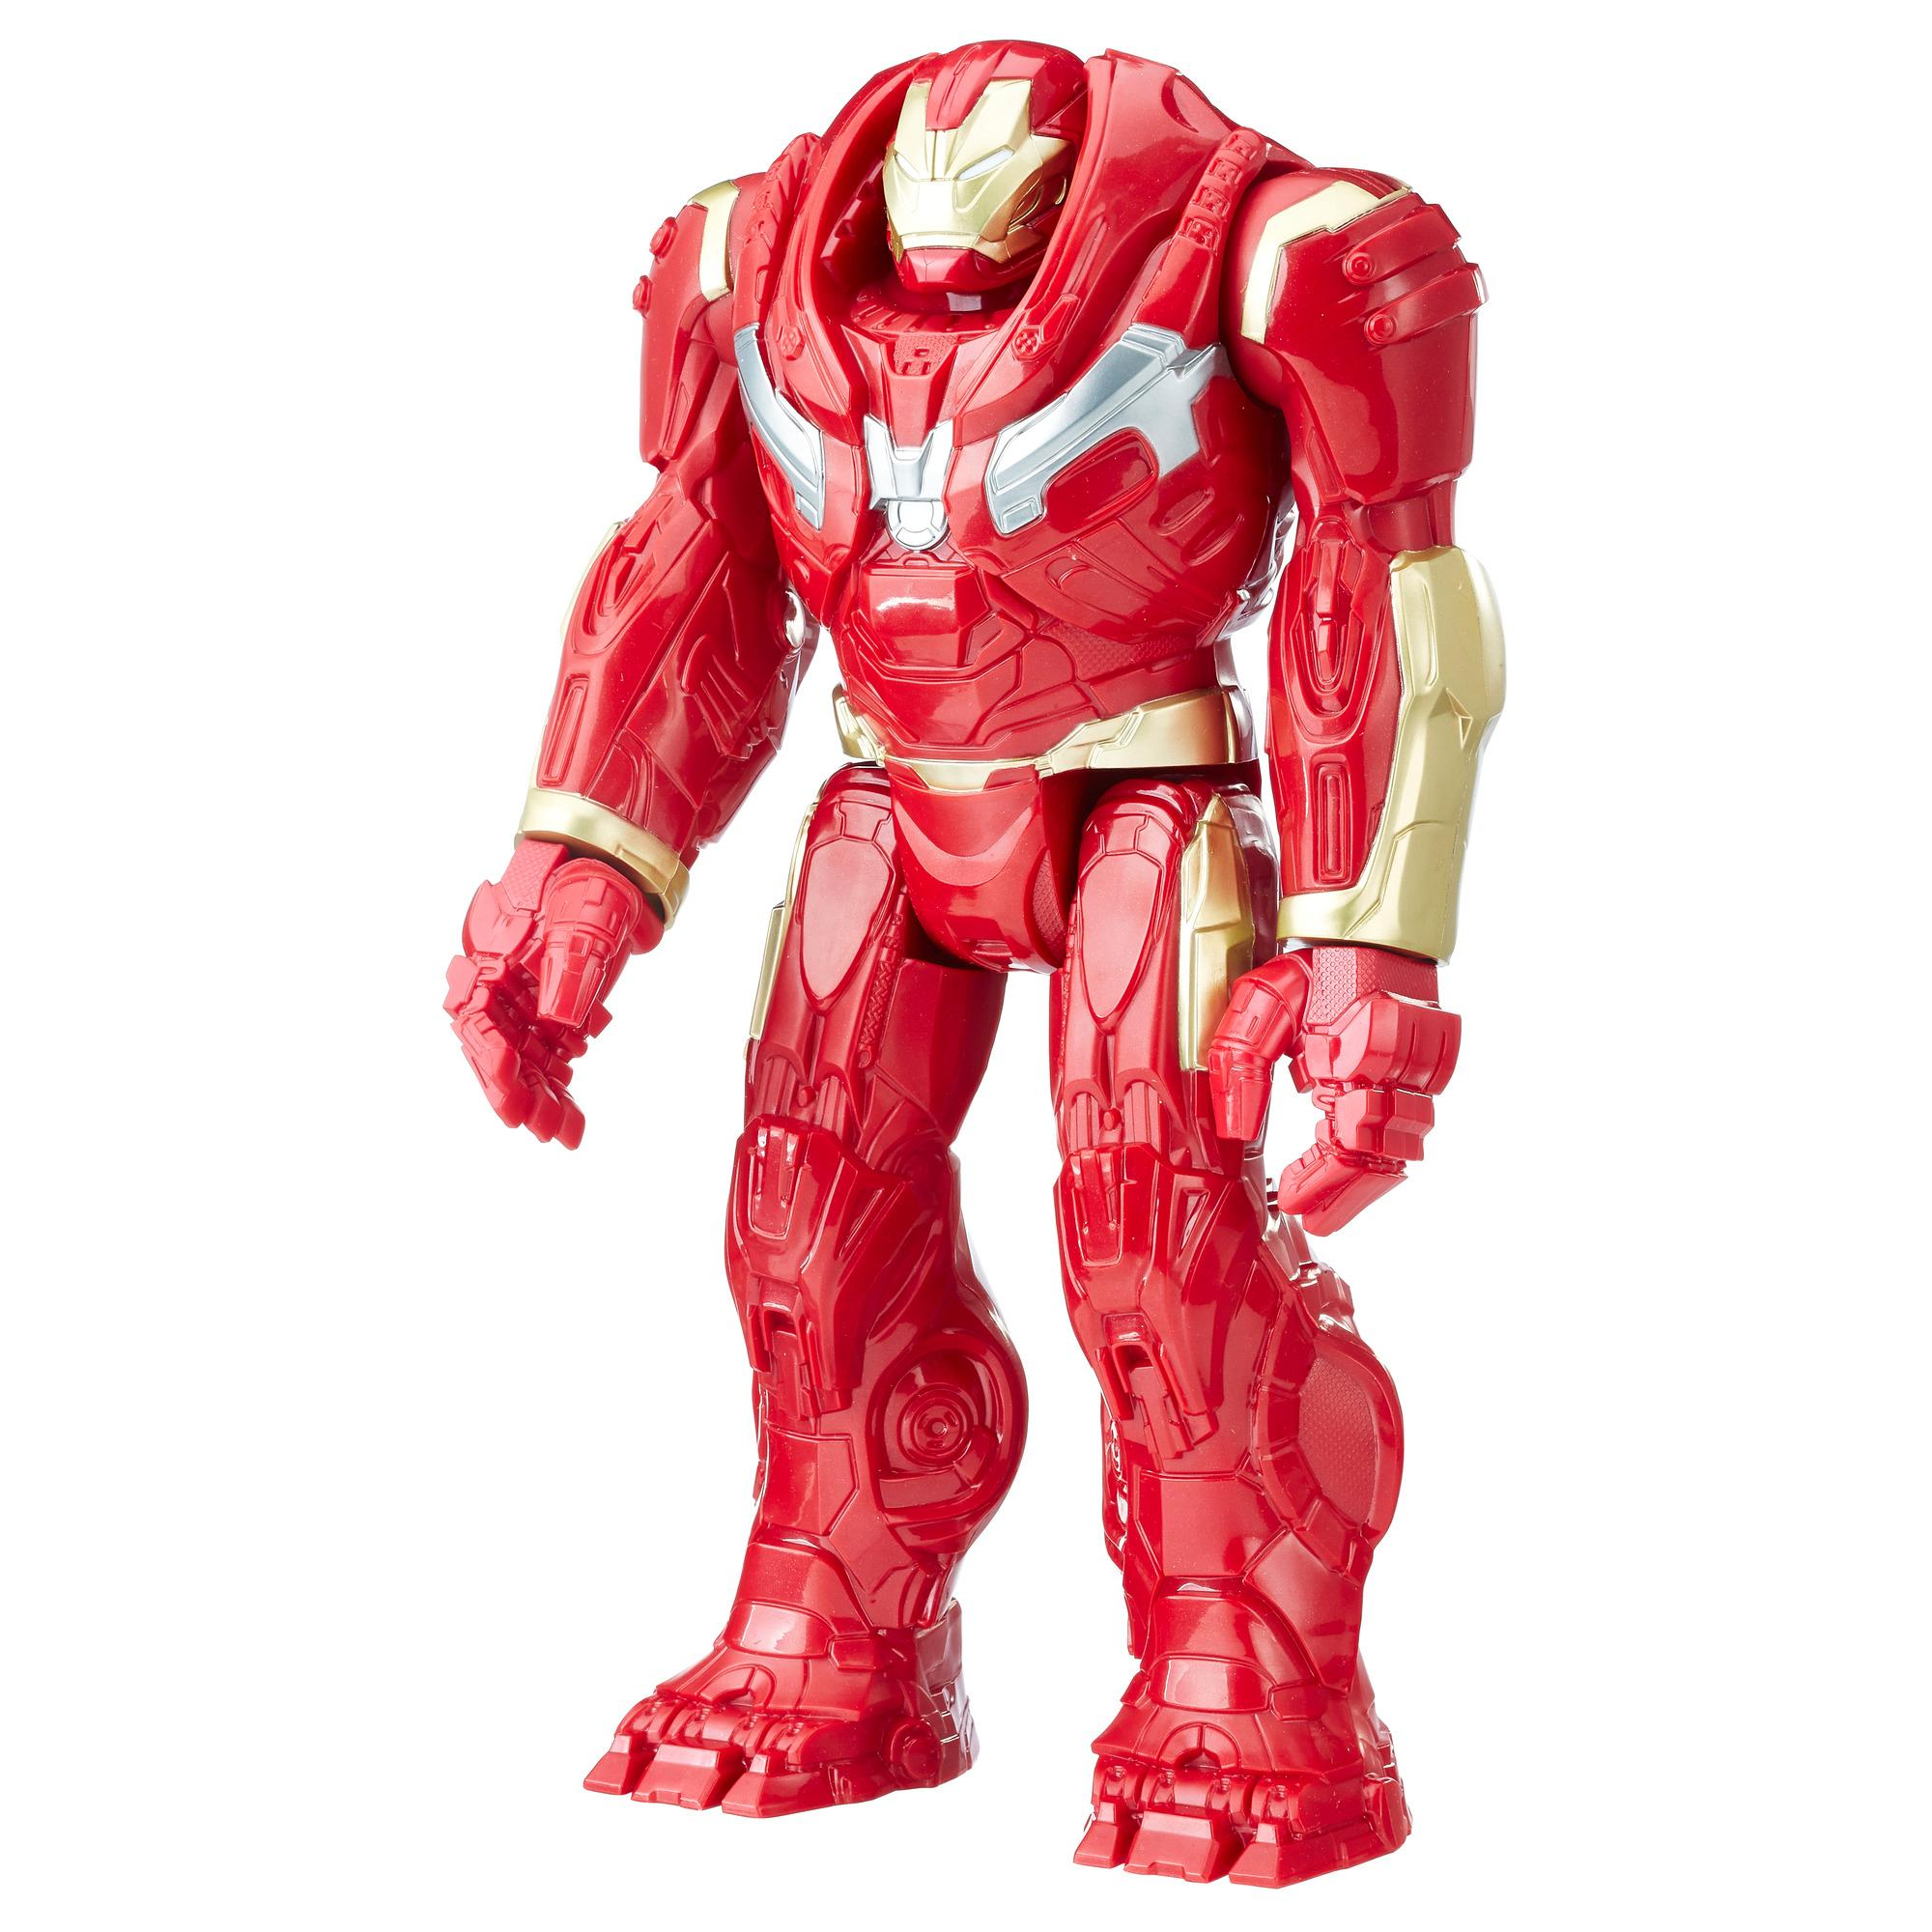 Avengers Titan Hero Power FX Hulk Buster